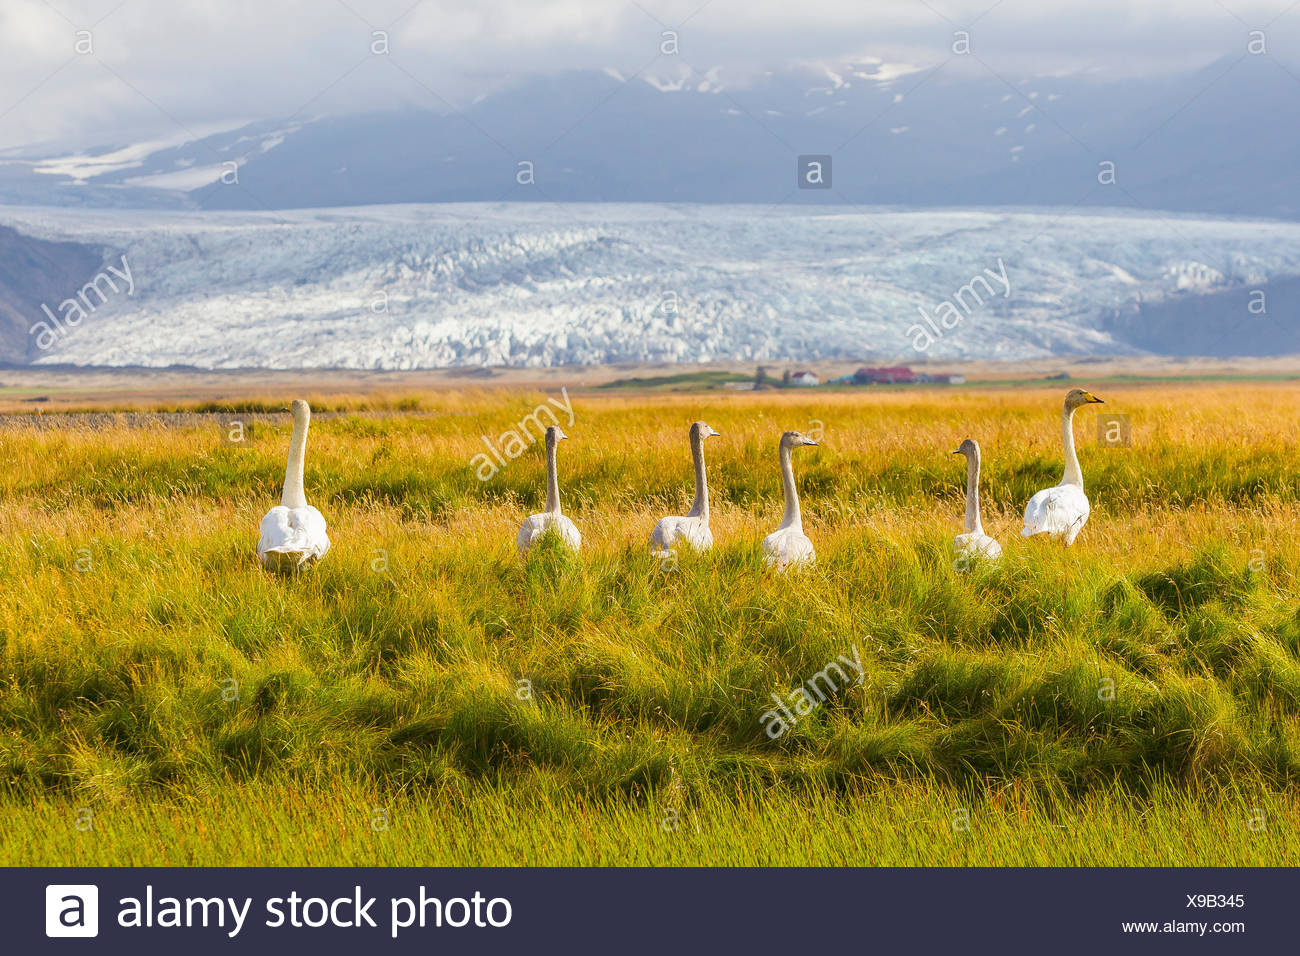 A family of whooper swans in tall grass near a large glacier on the south coast of Iceland. - Stock Image